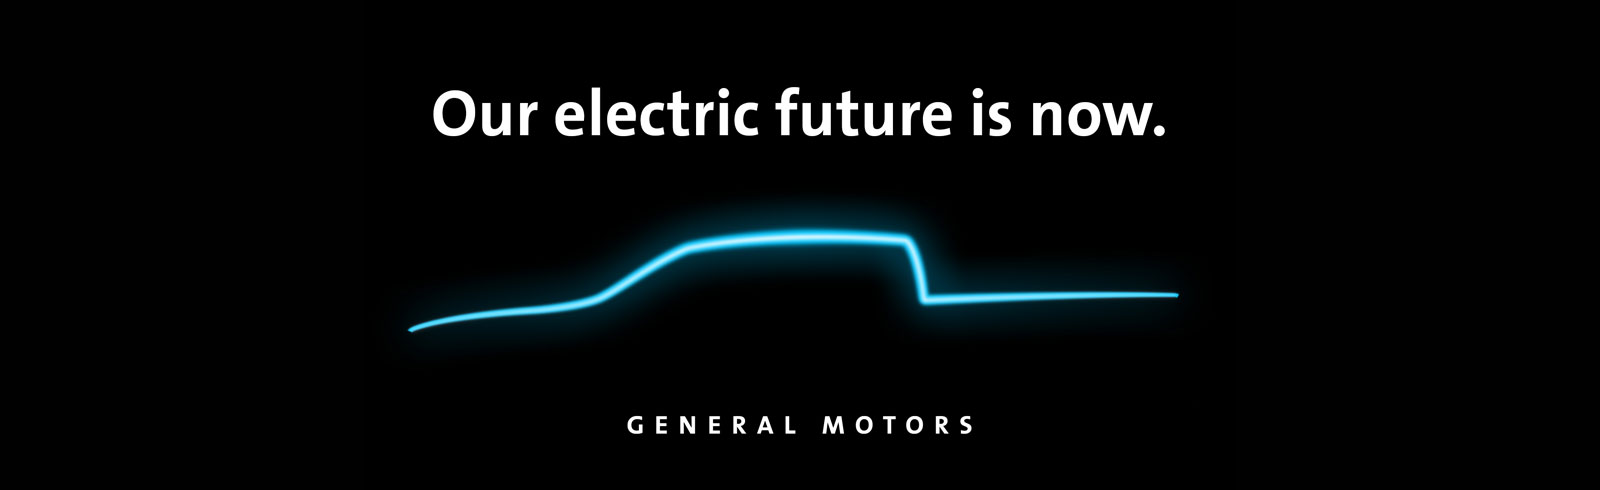 GM teases its upcoming electric pickup truck, production is scheduled for late 2021